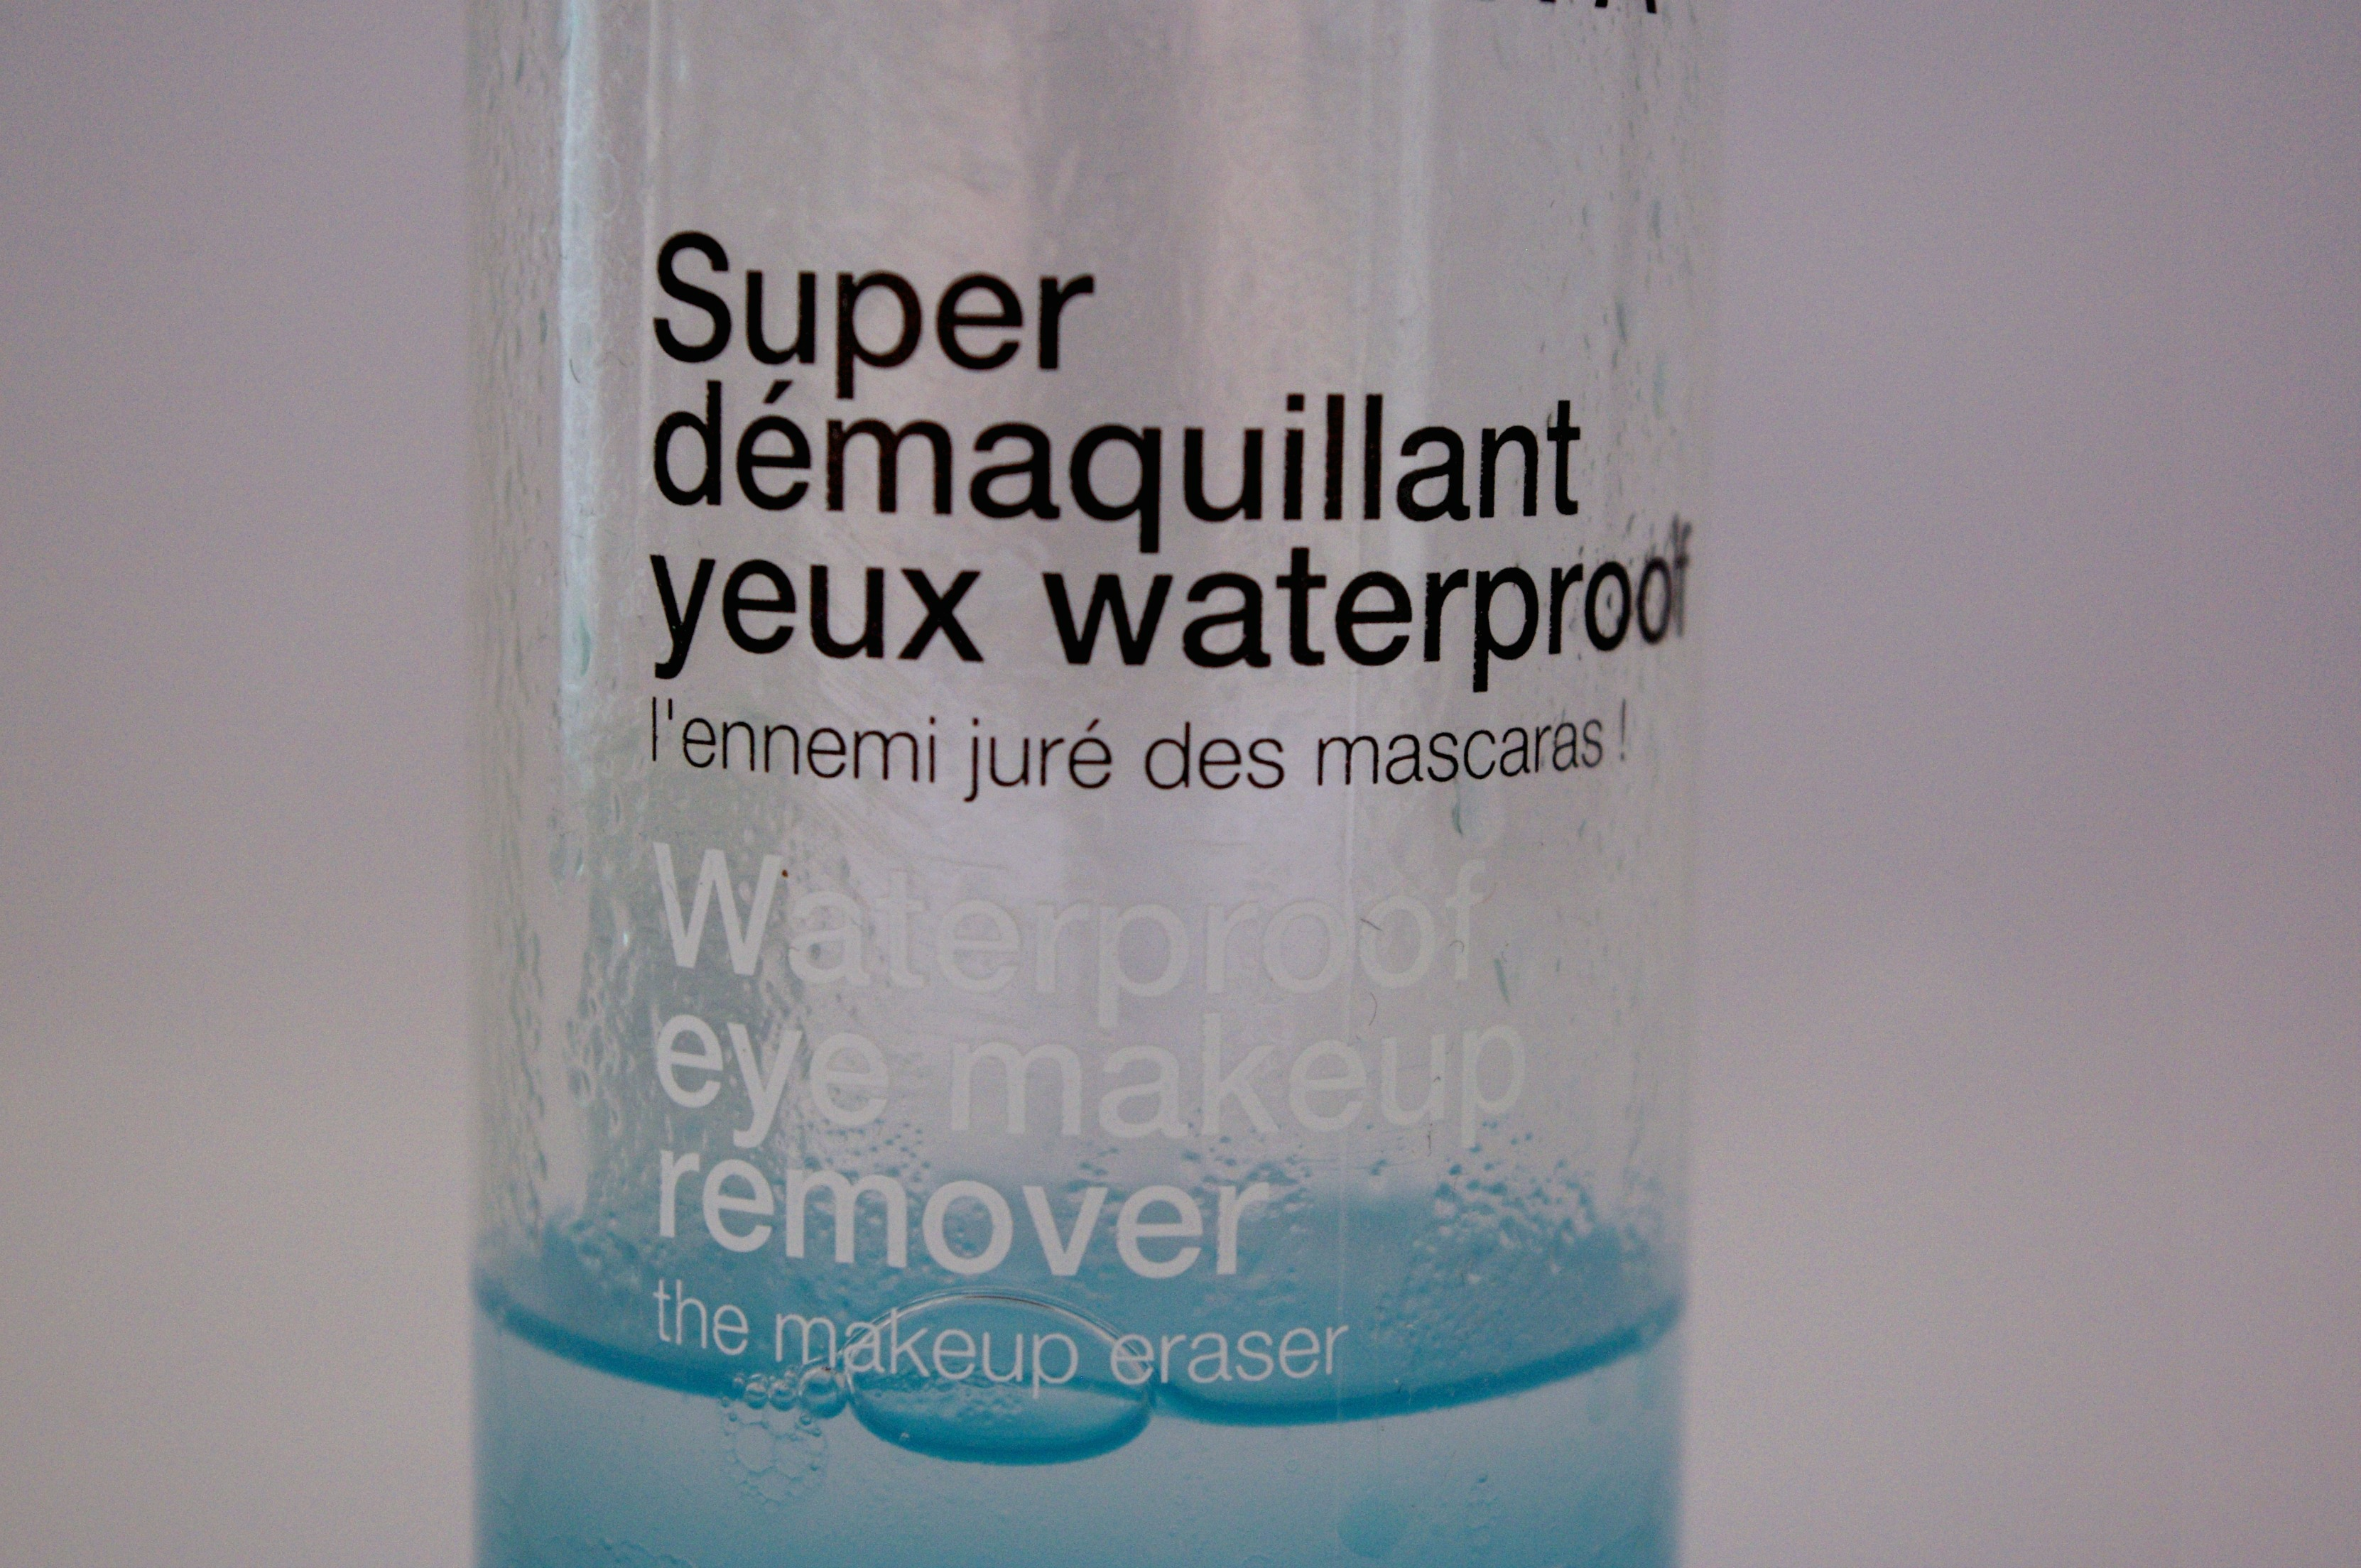 super démaquillant yeux waterproof sephora 2